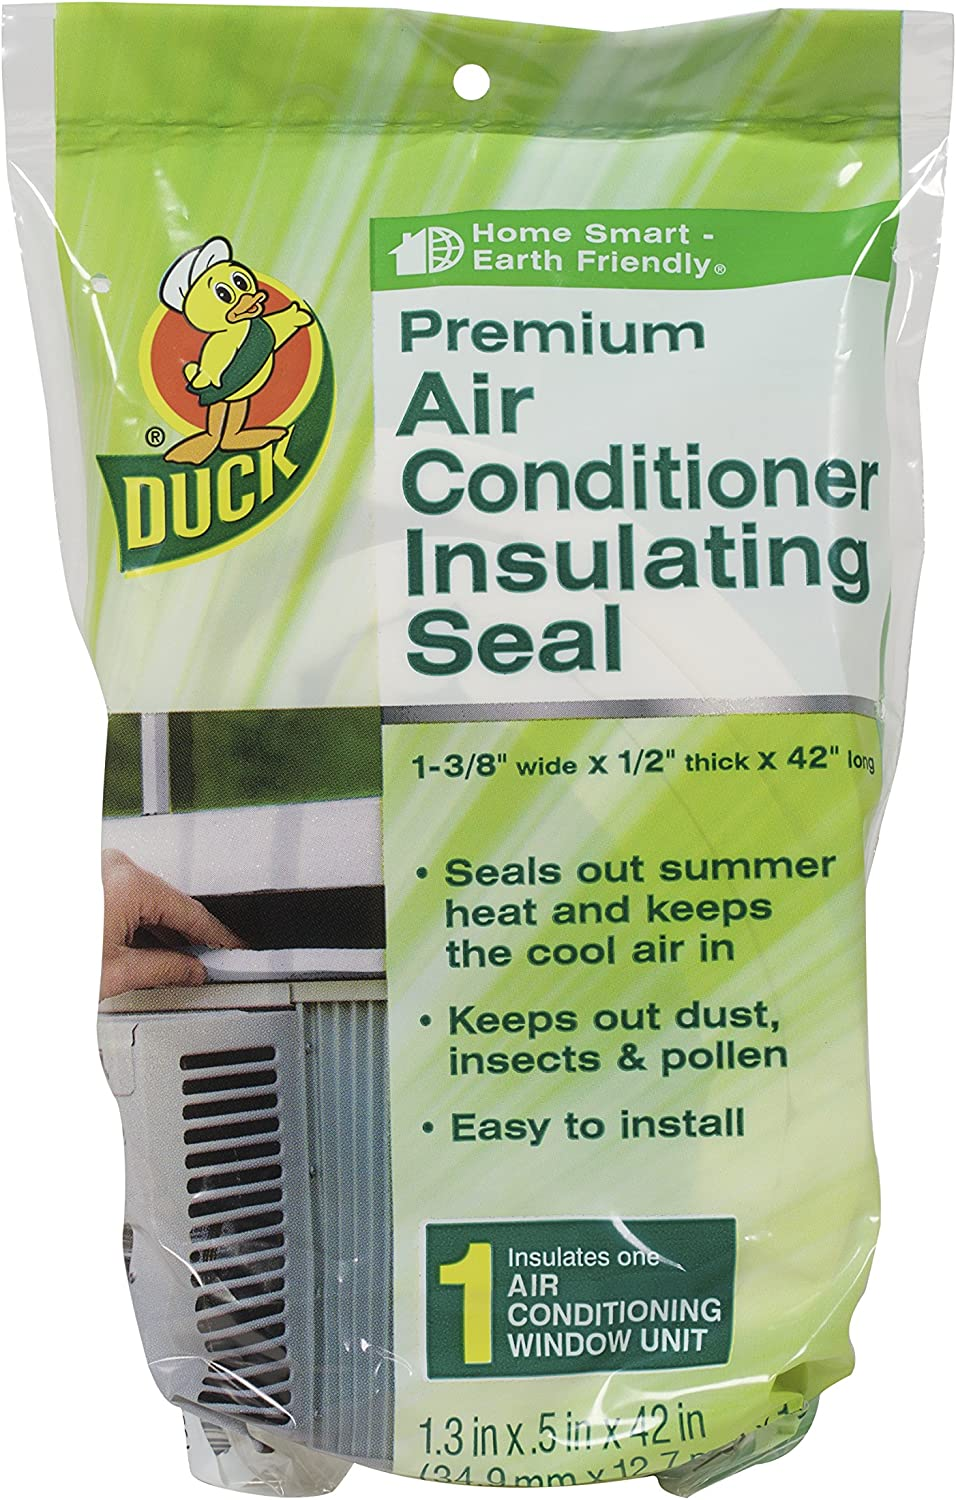 Duck Brand Premium Window Air Conditioner Insulating Foam Seal, 1.3-Inch x 0.5-Inch x 42-Inch, 1-Pack, 282088